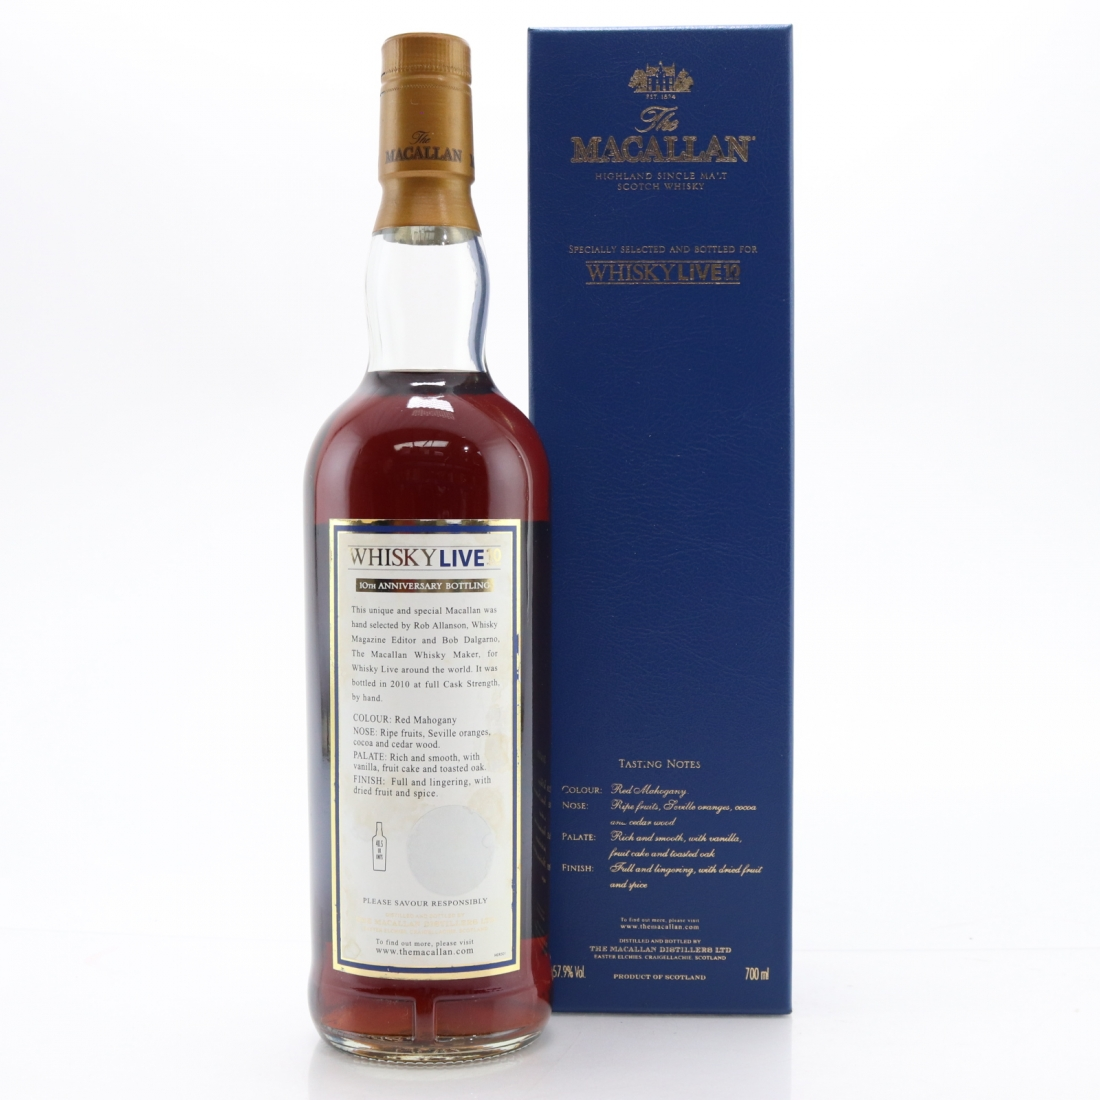 Macallan 10 Year Old / Whisky Live 10th Anniversary